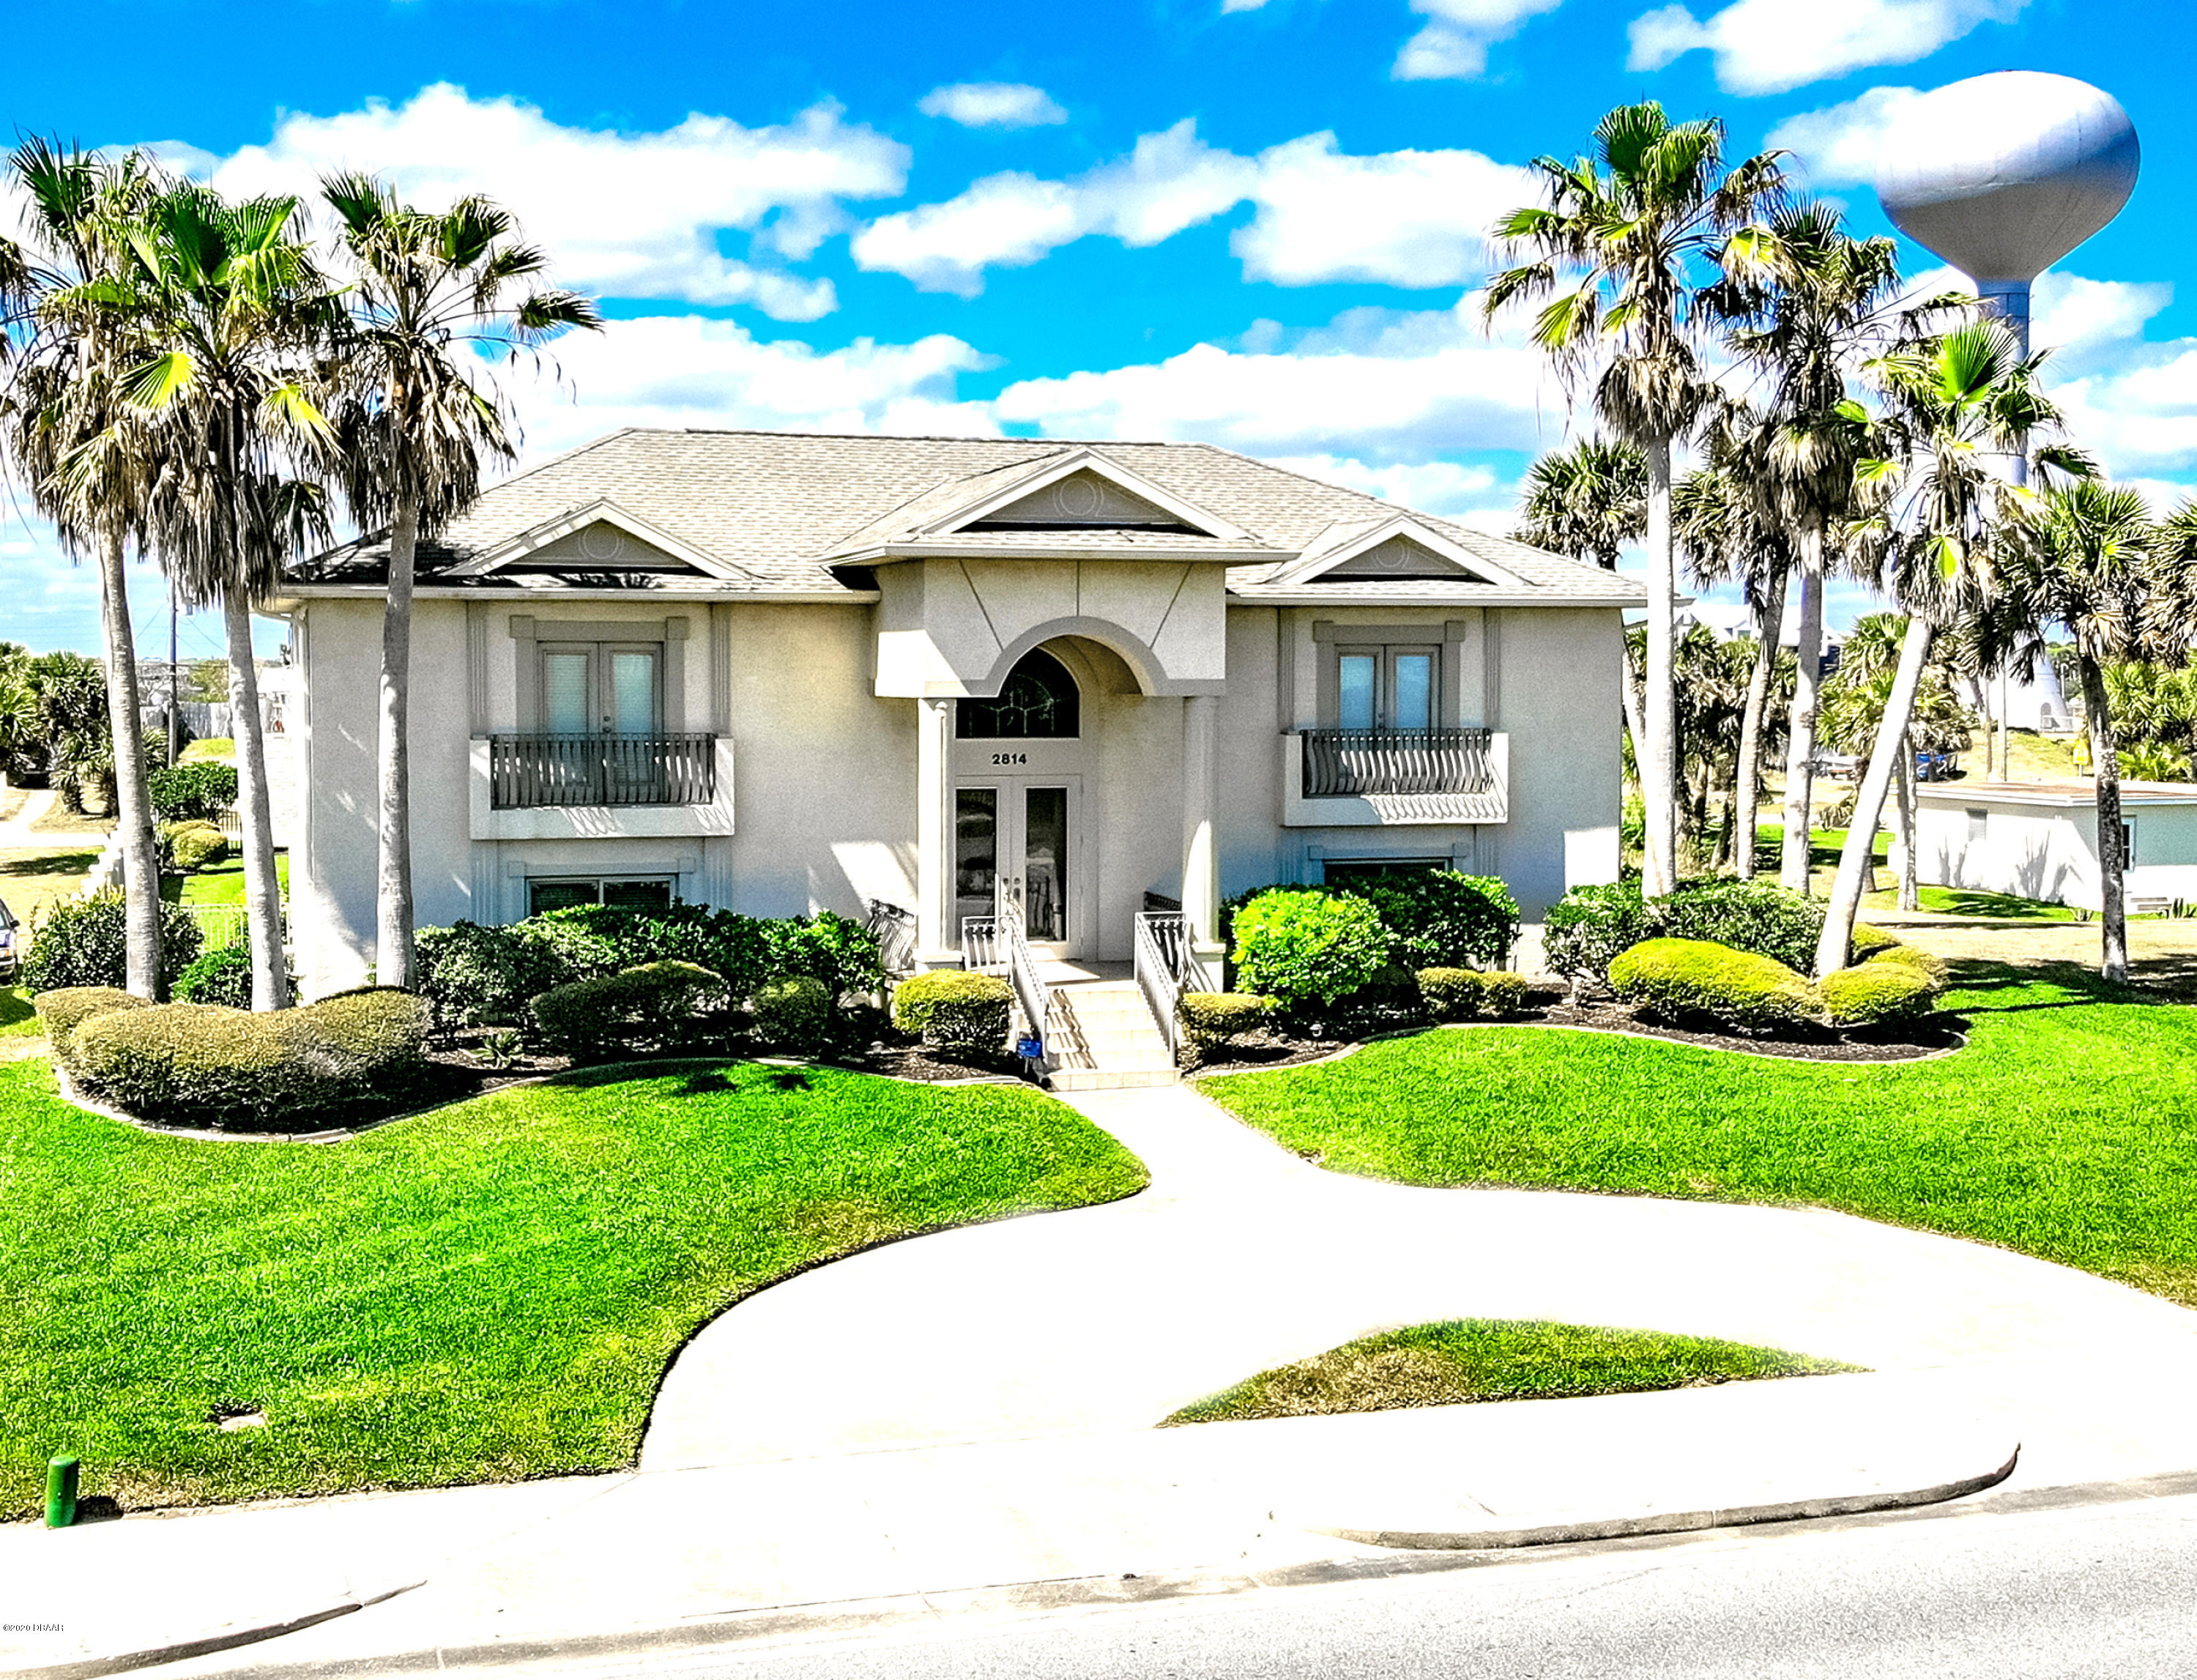 2814 S Atlantic Avenue, Daytona Beach Shores, Florida